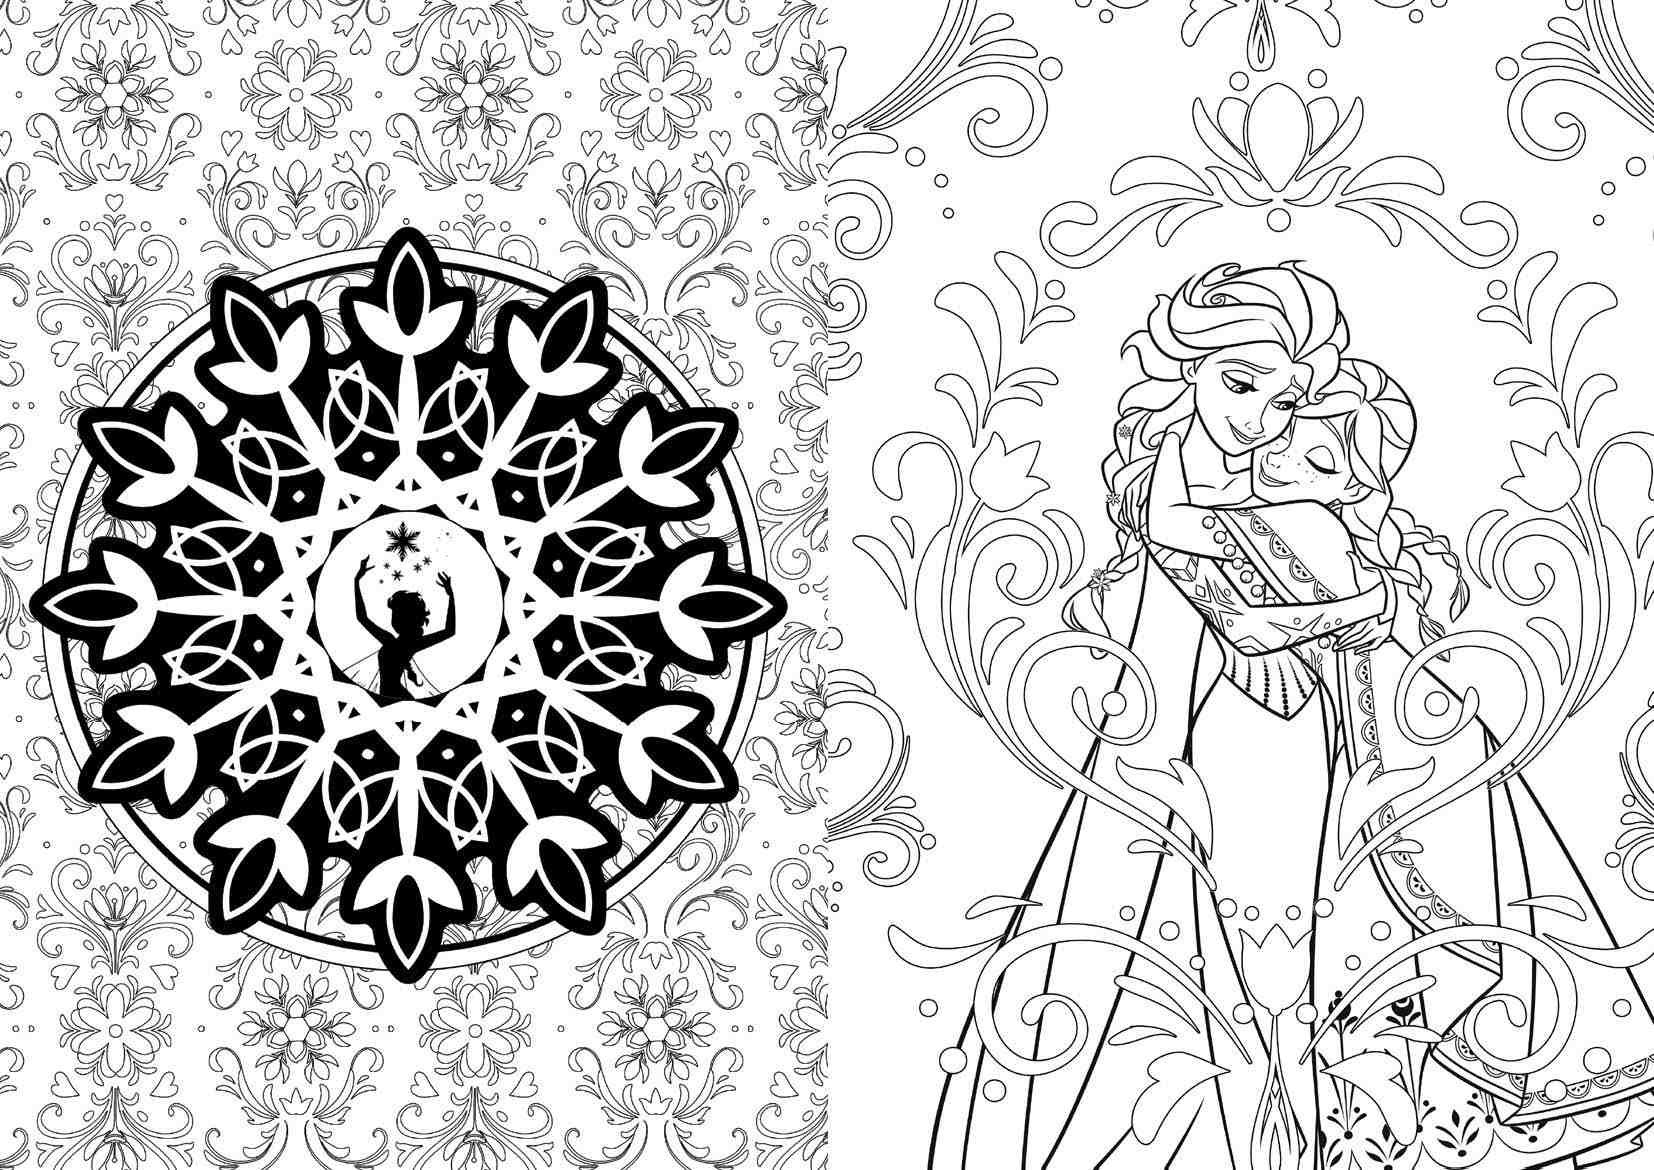 art of coloring disney frozen 100 images to inspire creativity